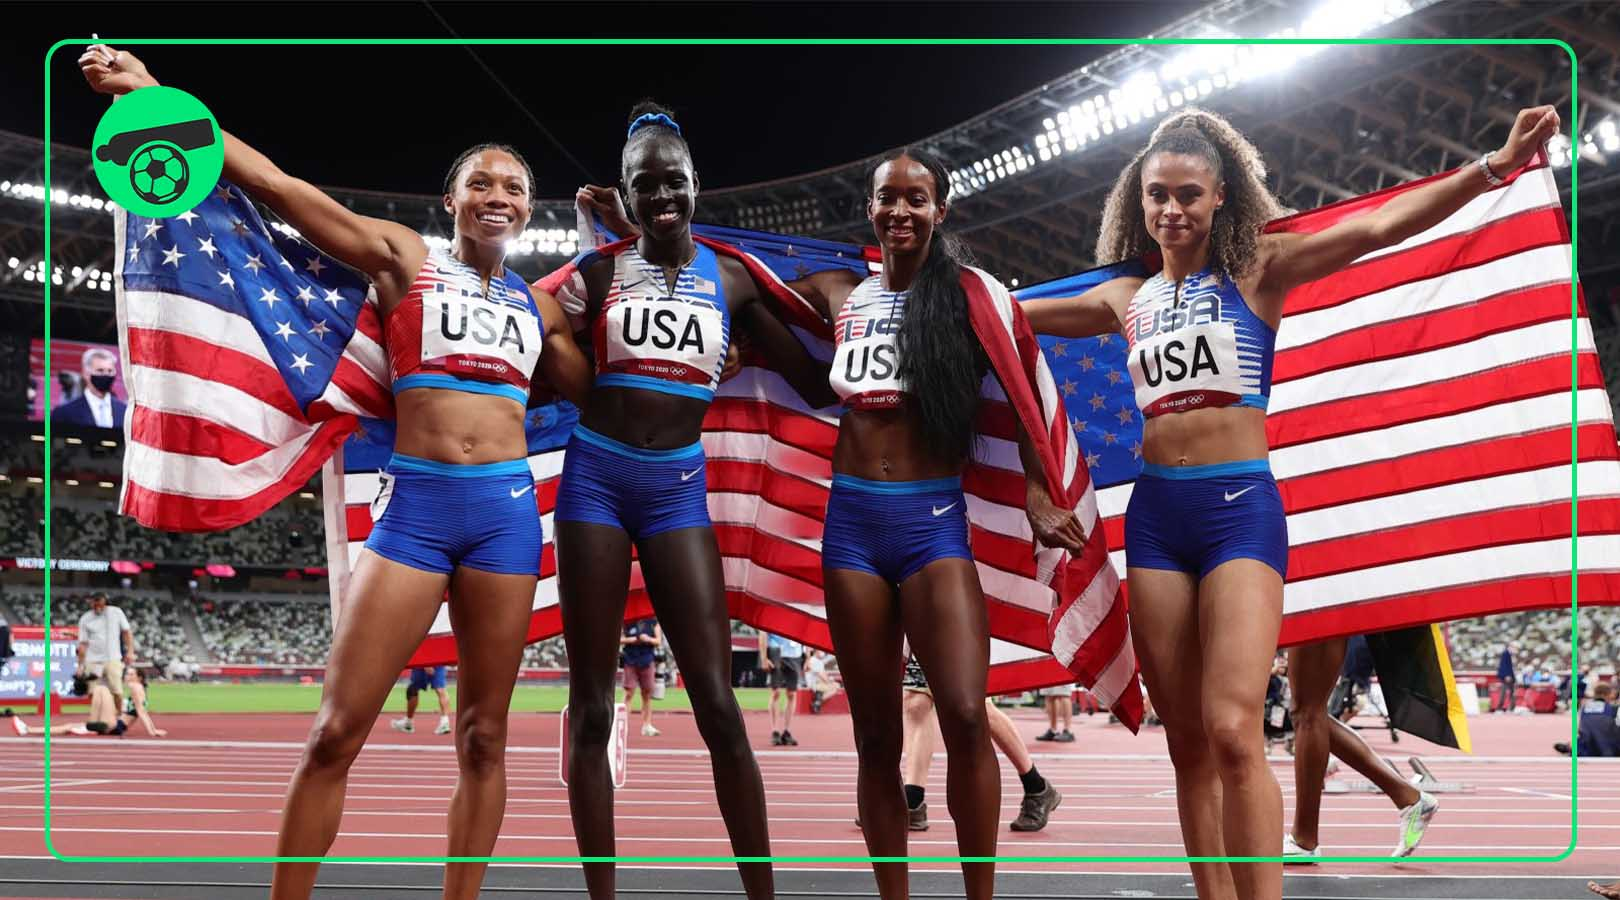 USA with 113 gold medals tops the table